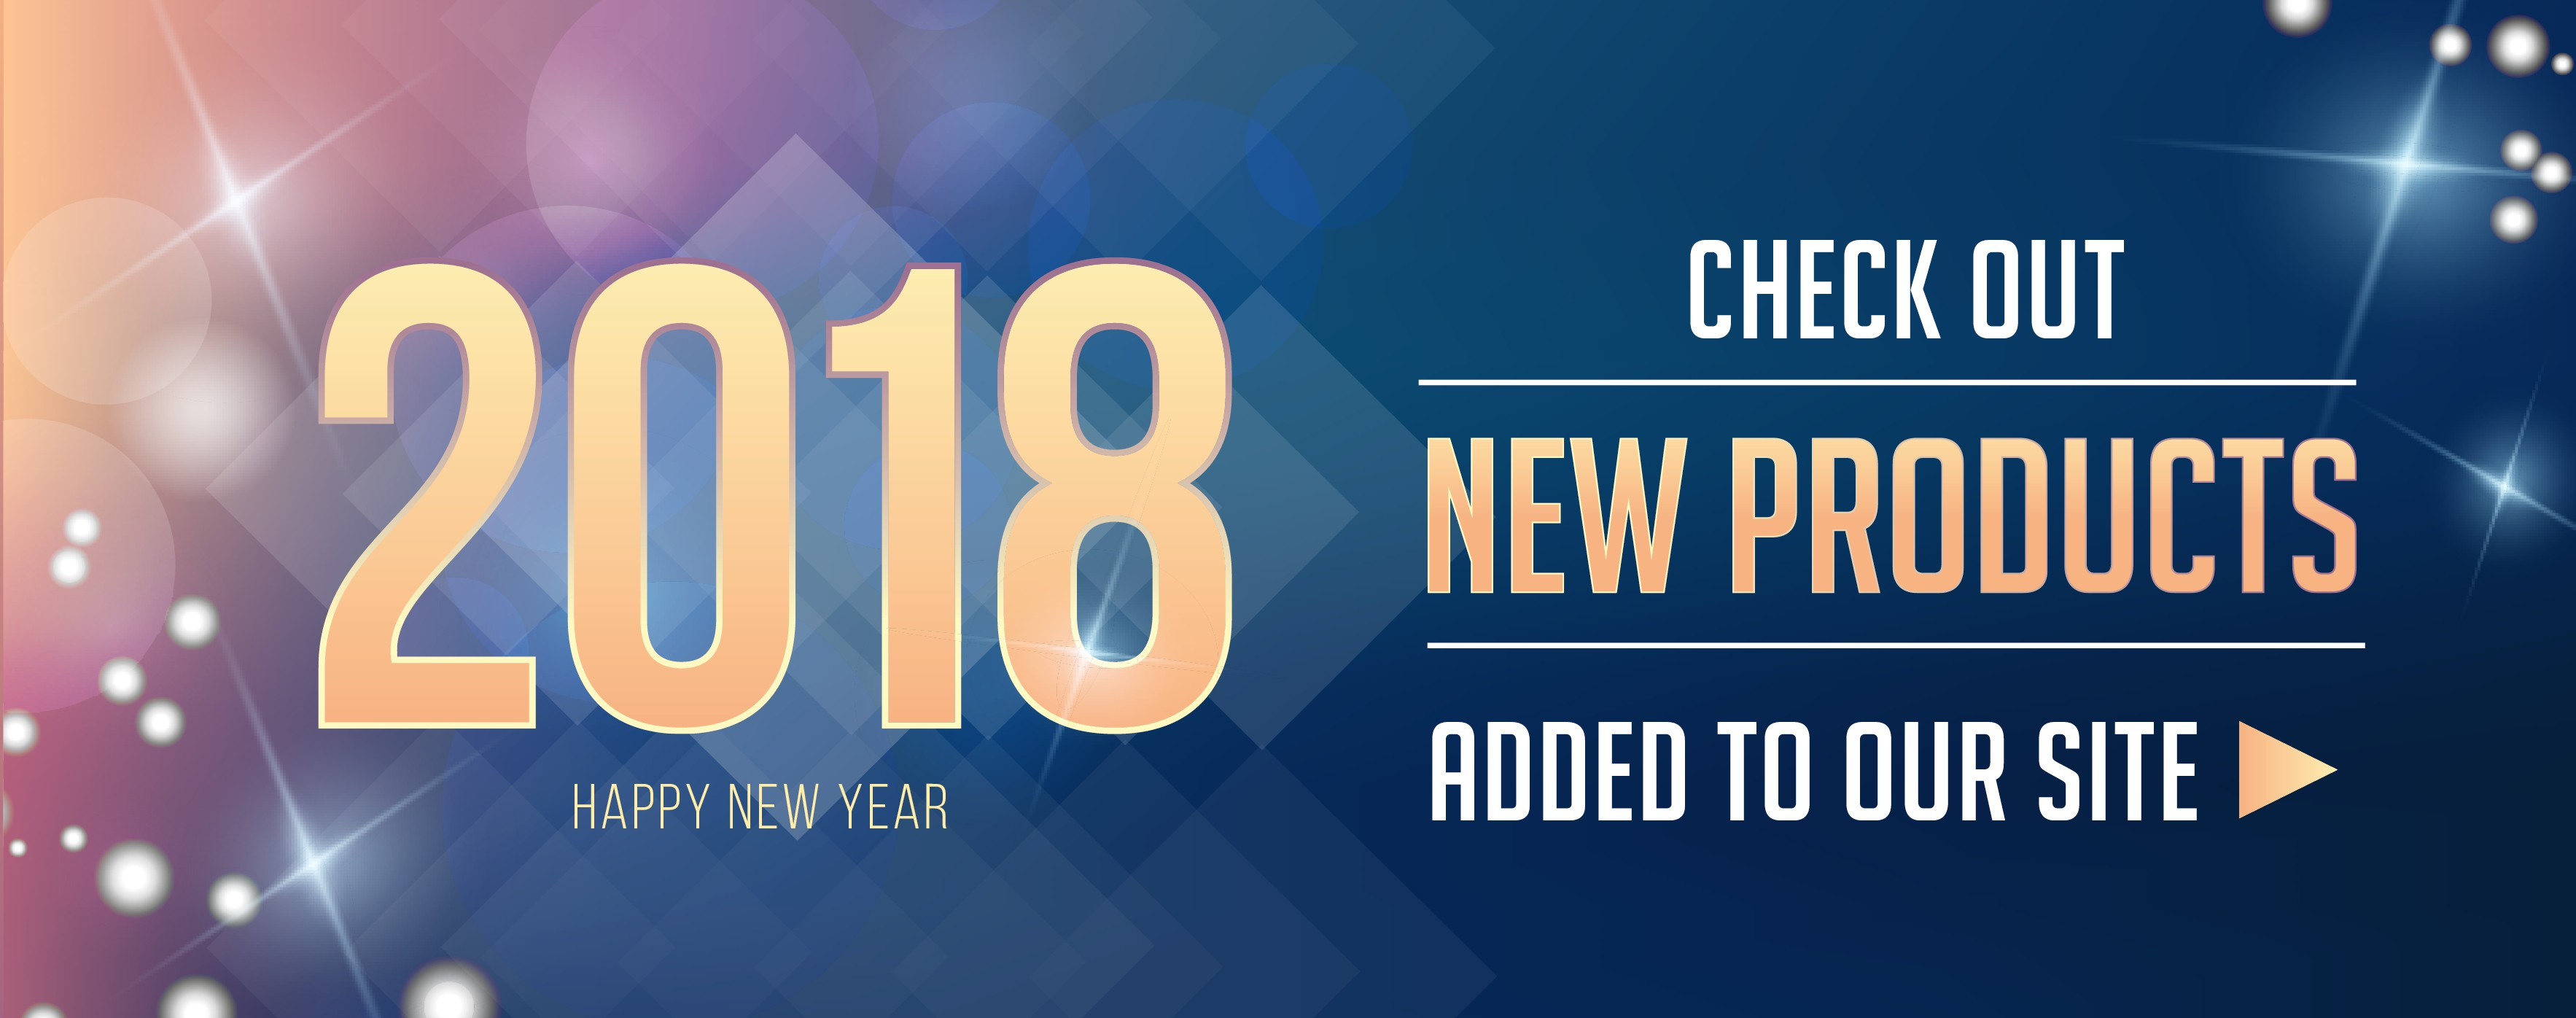 New Year 2018 Products